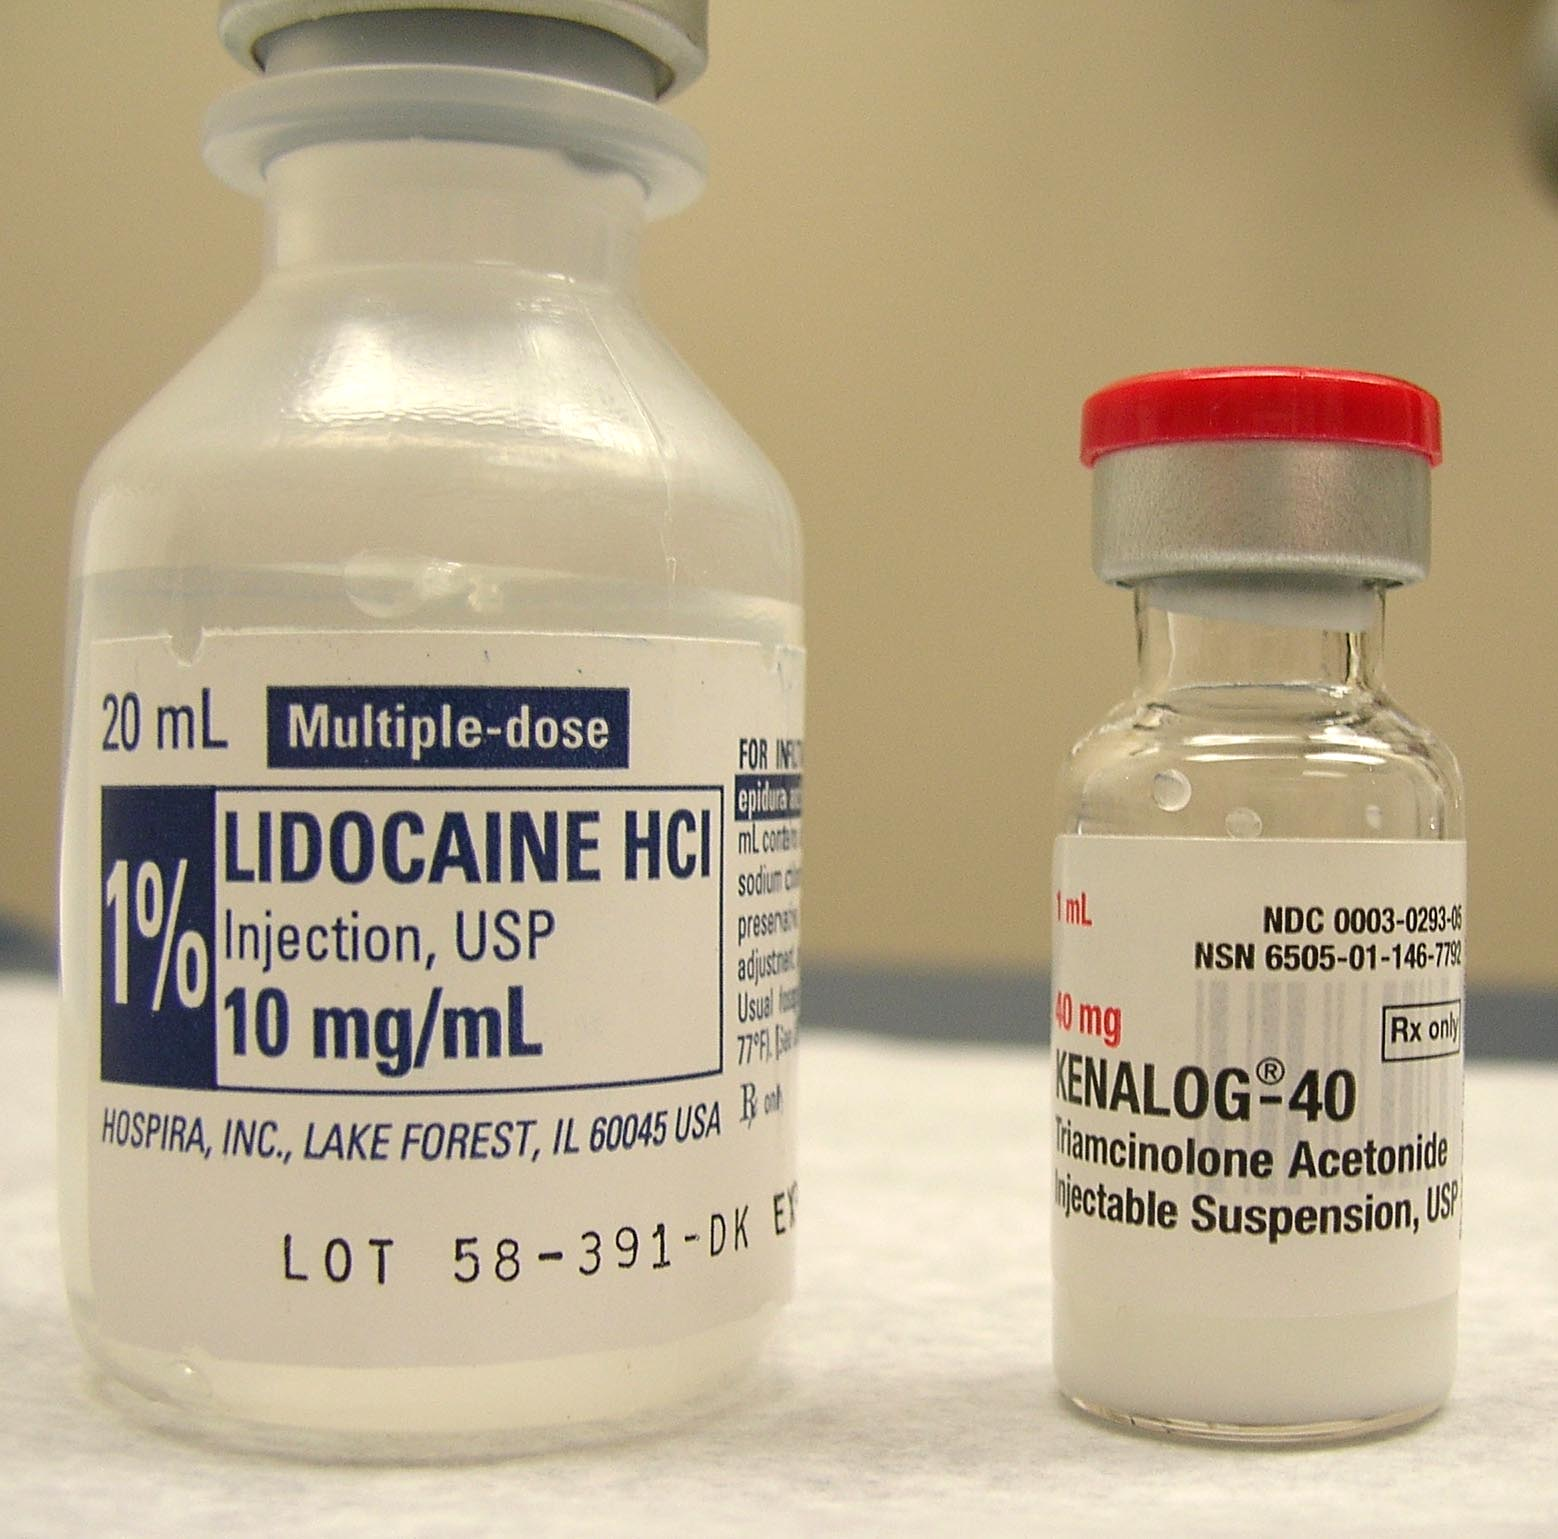 lidocaine injection dosing information